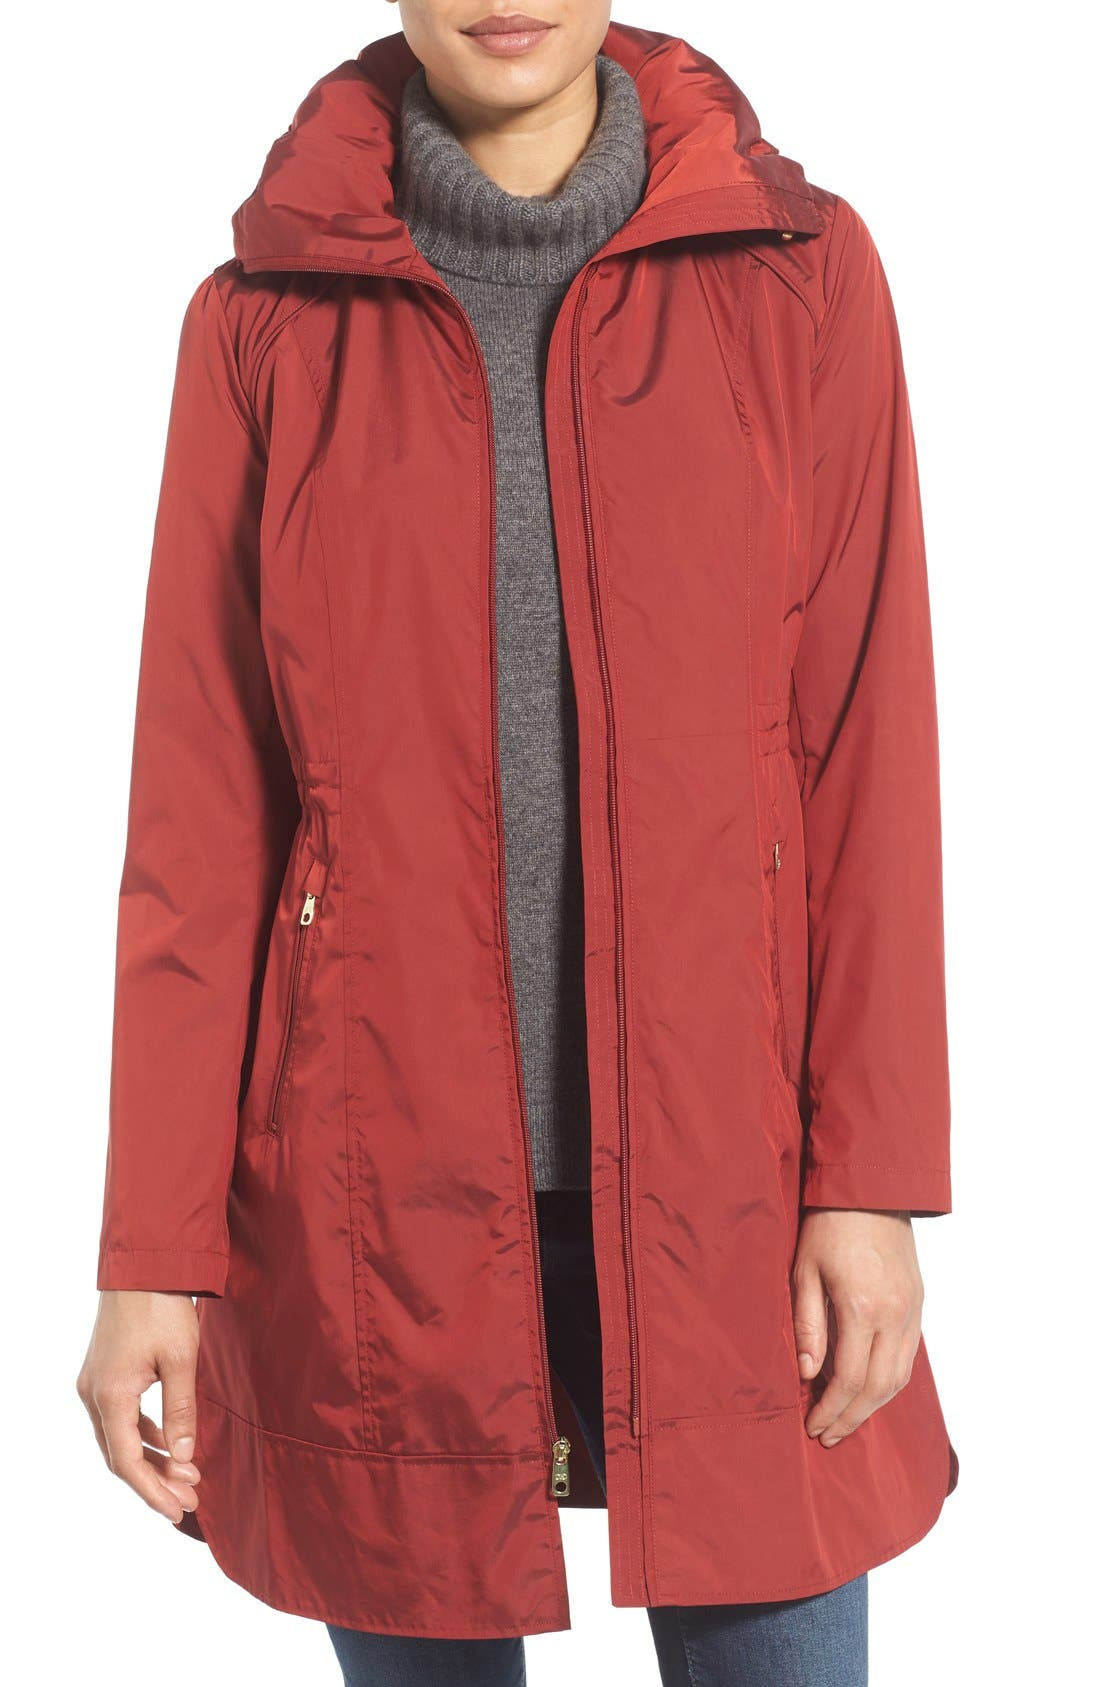 Packable Rain Jacket,                         Main,                         color, Garnet